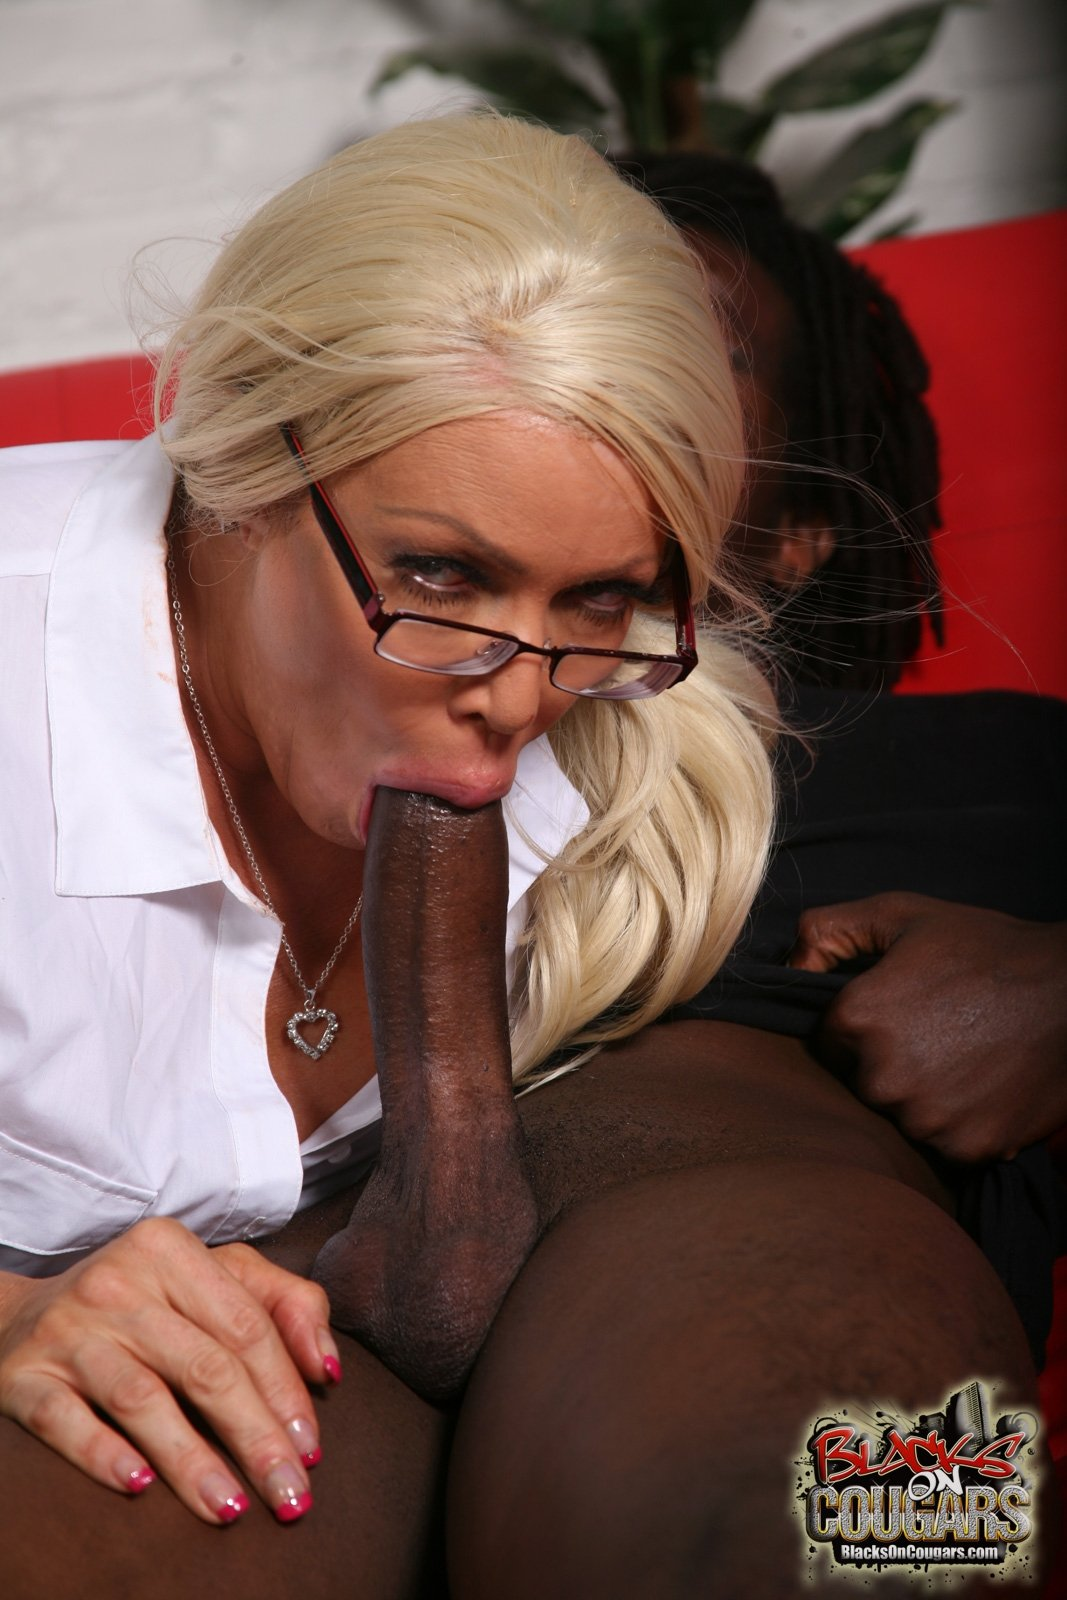 Bitch with sexual makeup gives head before riding up chunky rod there